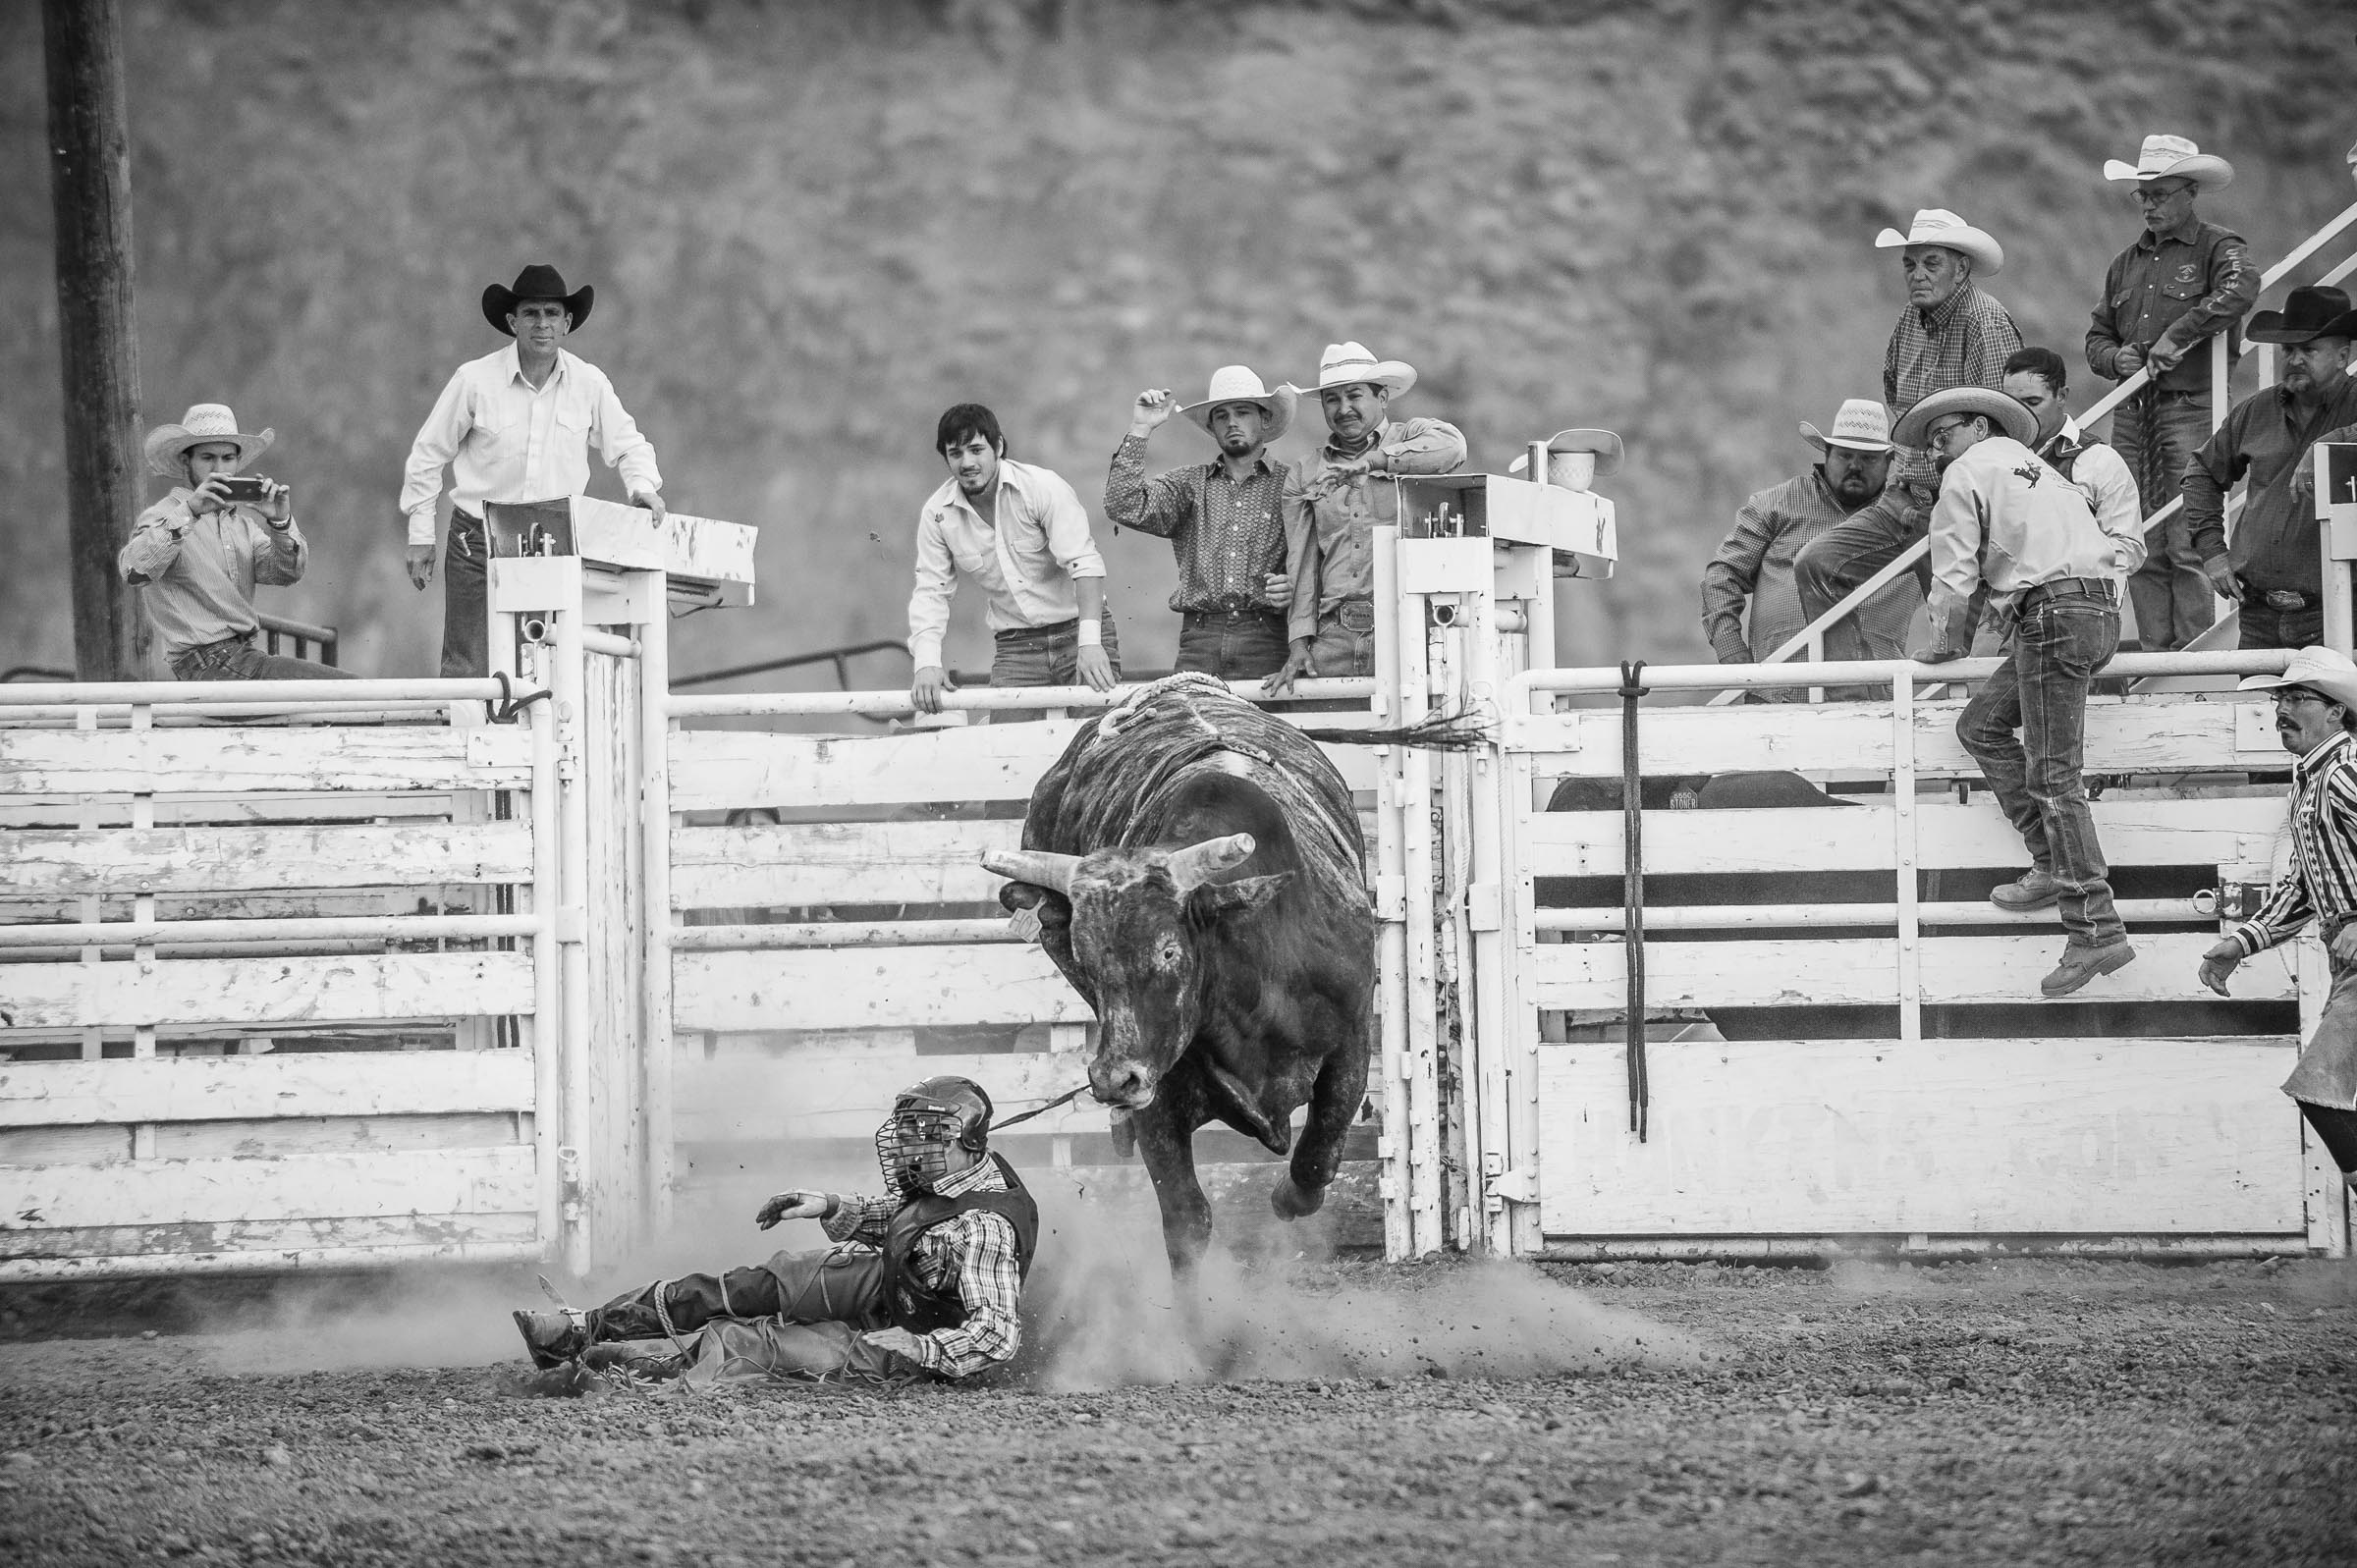 rodeo_whisky-bent_bynum-2619.JPG